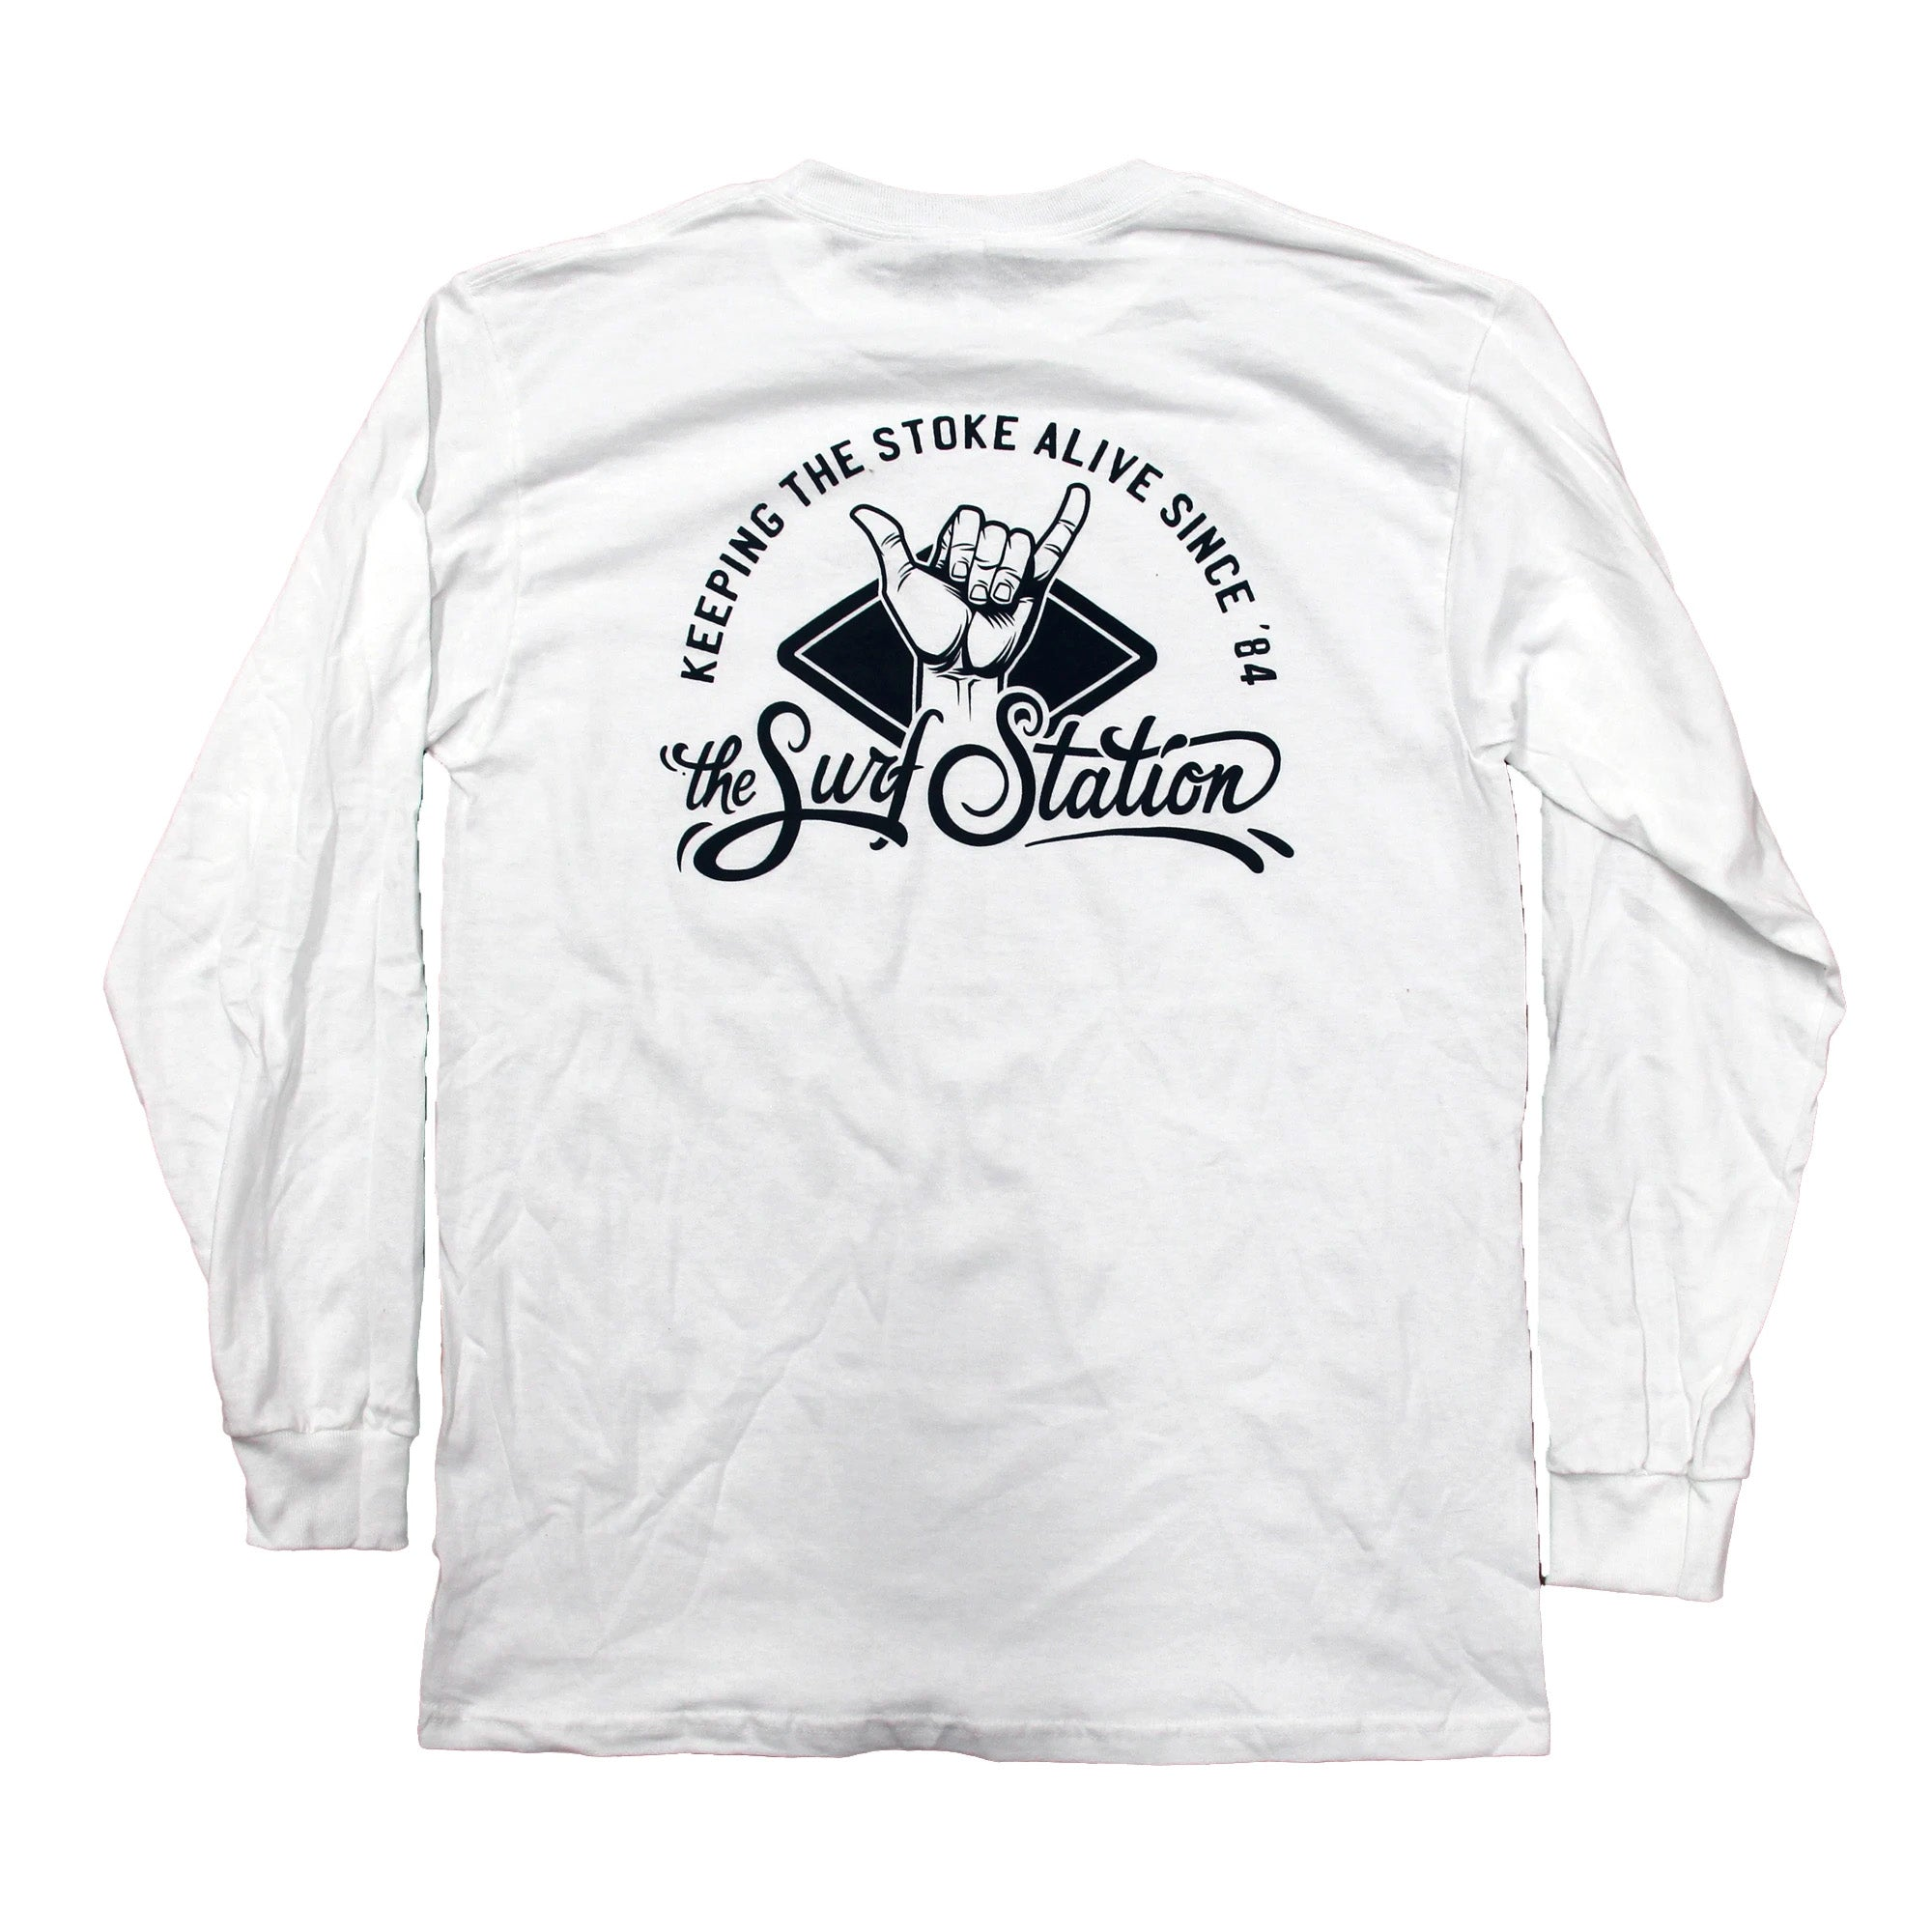 Surf Station Stoked Men's L/S T-Shirt